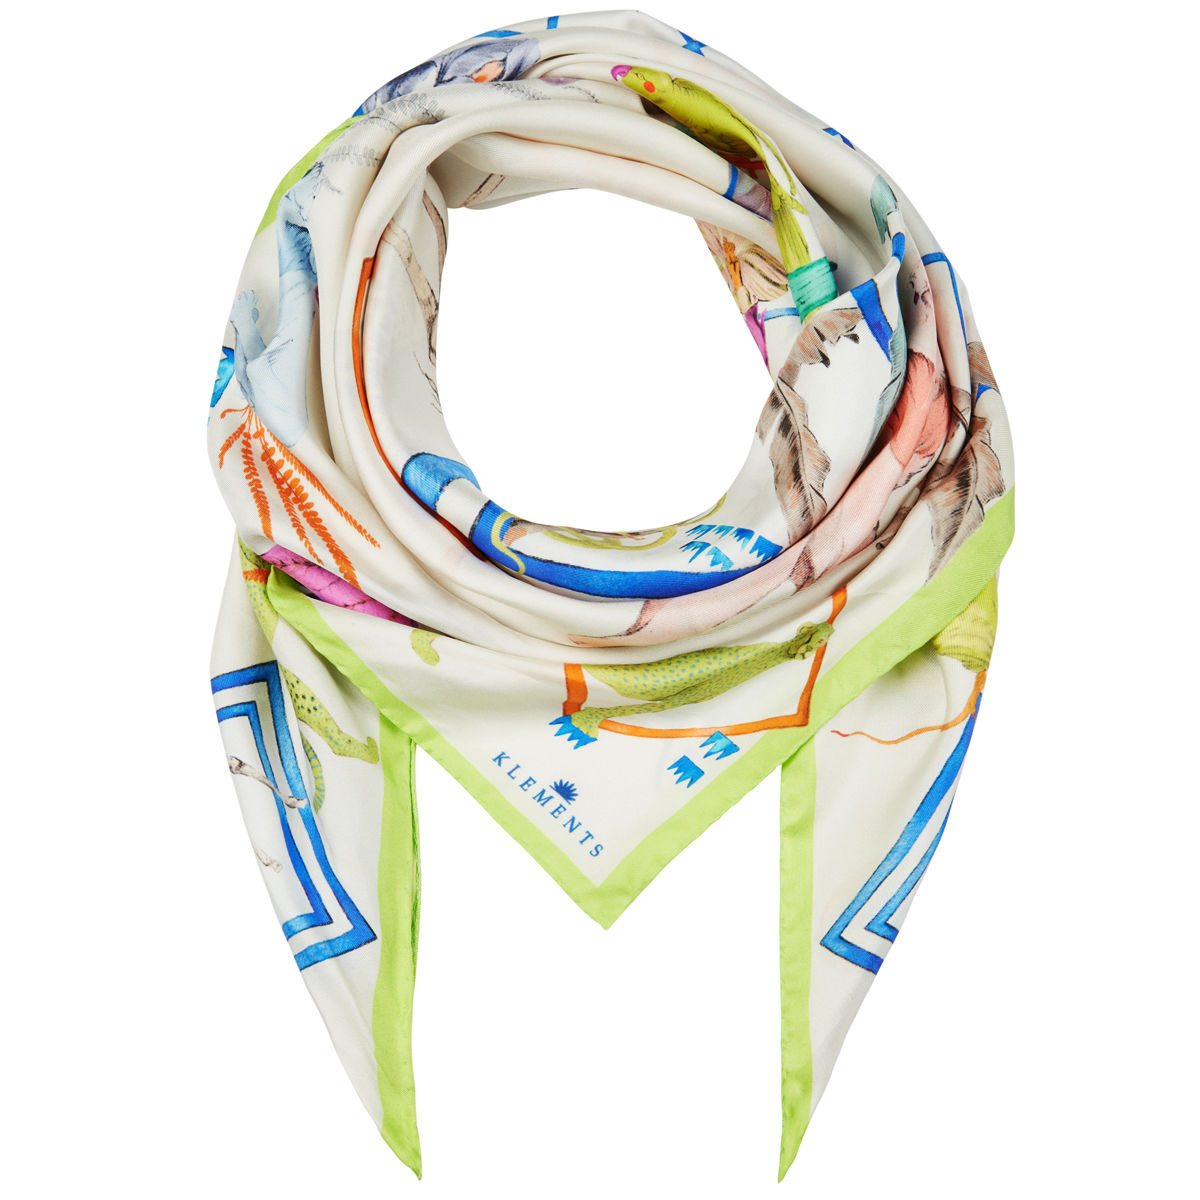 Medium scarf in Jungle Sketchbook print - product images  of